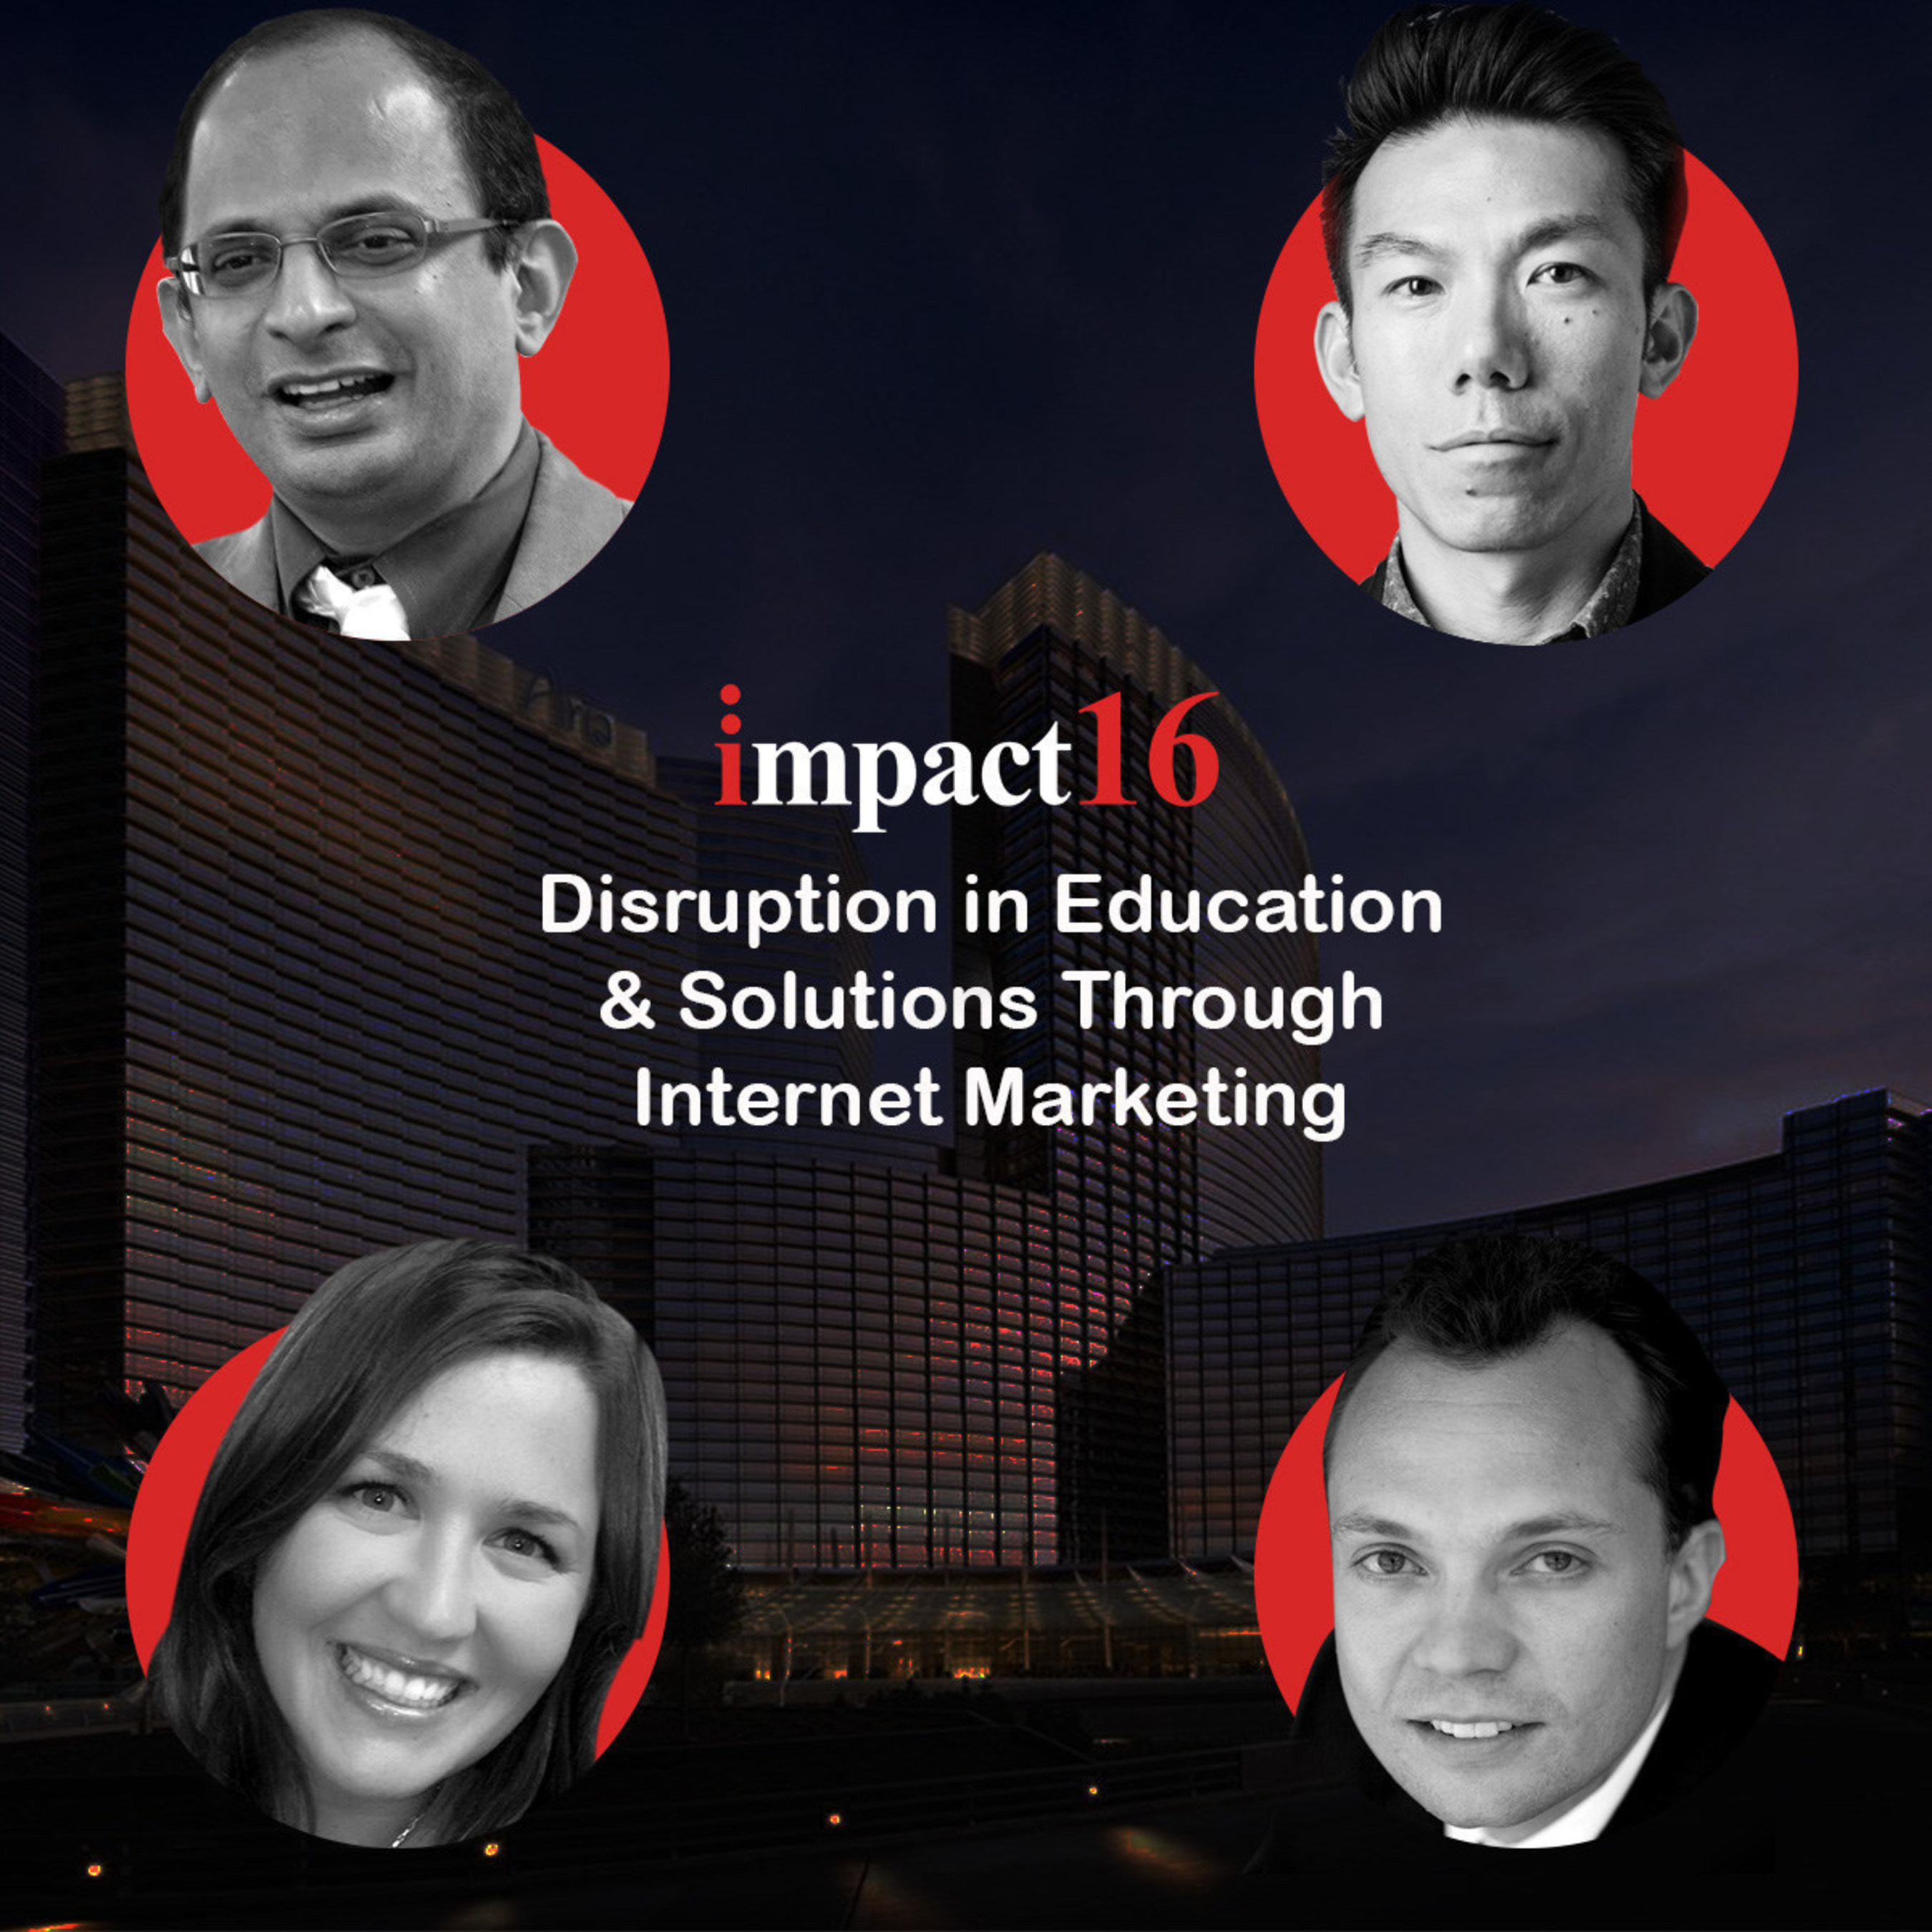 IMPACT16 to Feature Panel Discussion on Disruption in Education and Solutions Through Internet Marketing